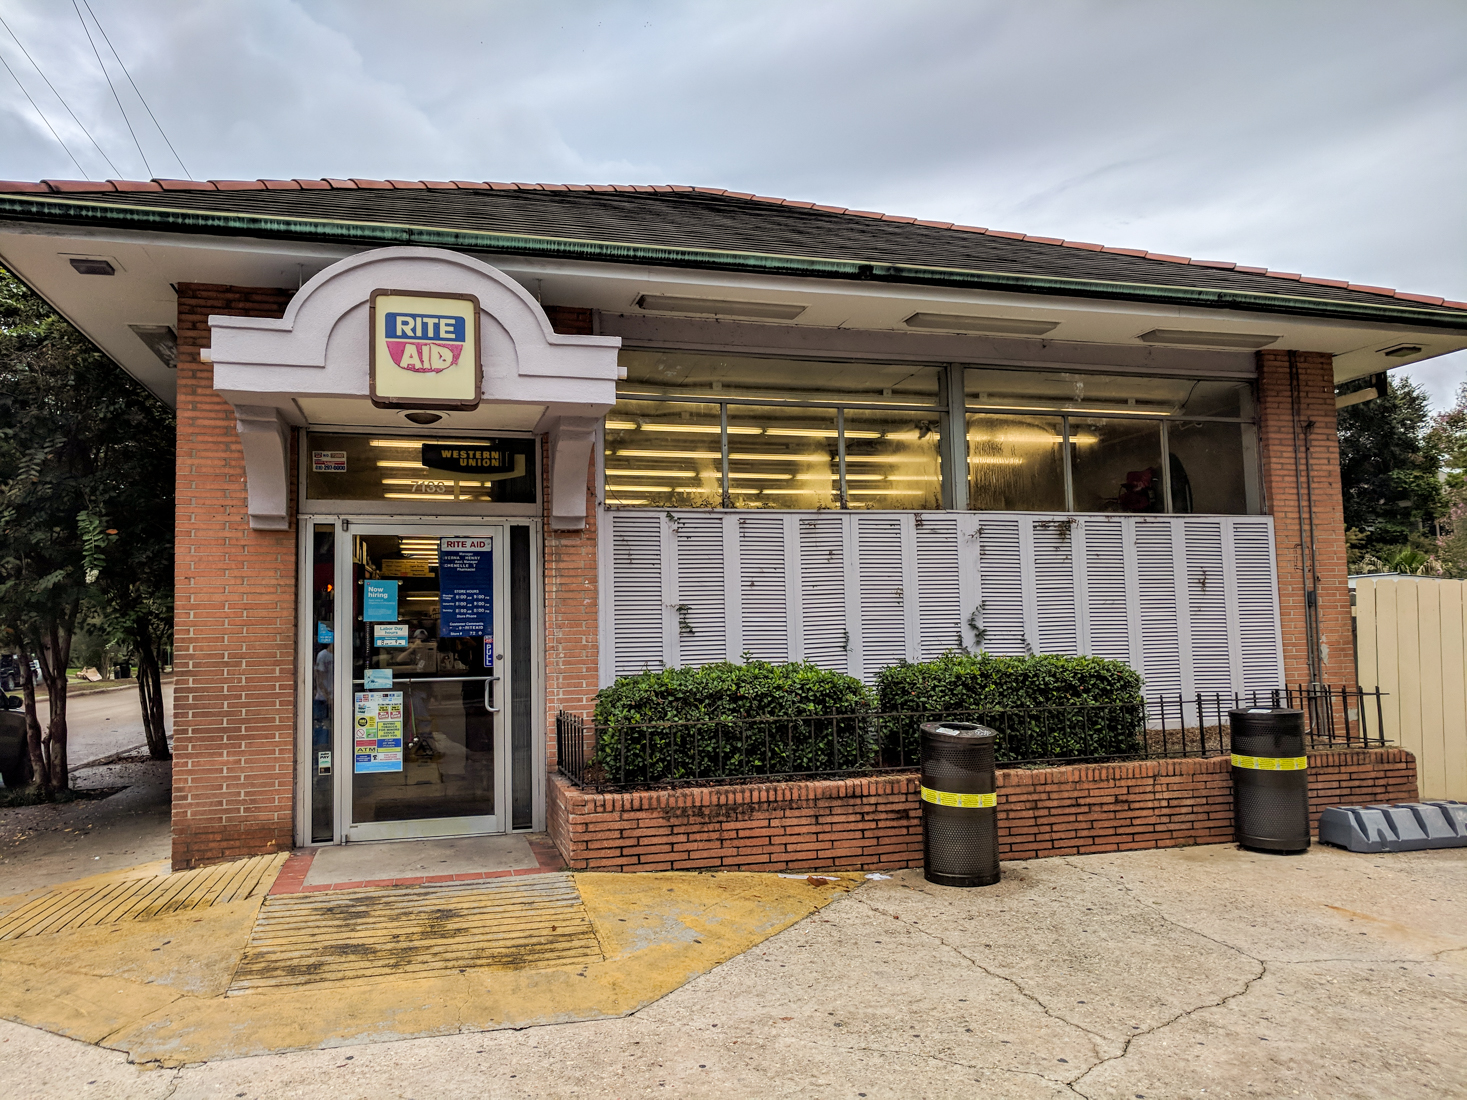 The Rite Aid store located at the intersection of Broadway Street and St. Charles Avenue. Photo credit: Jacob Meyer